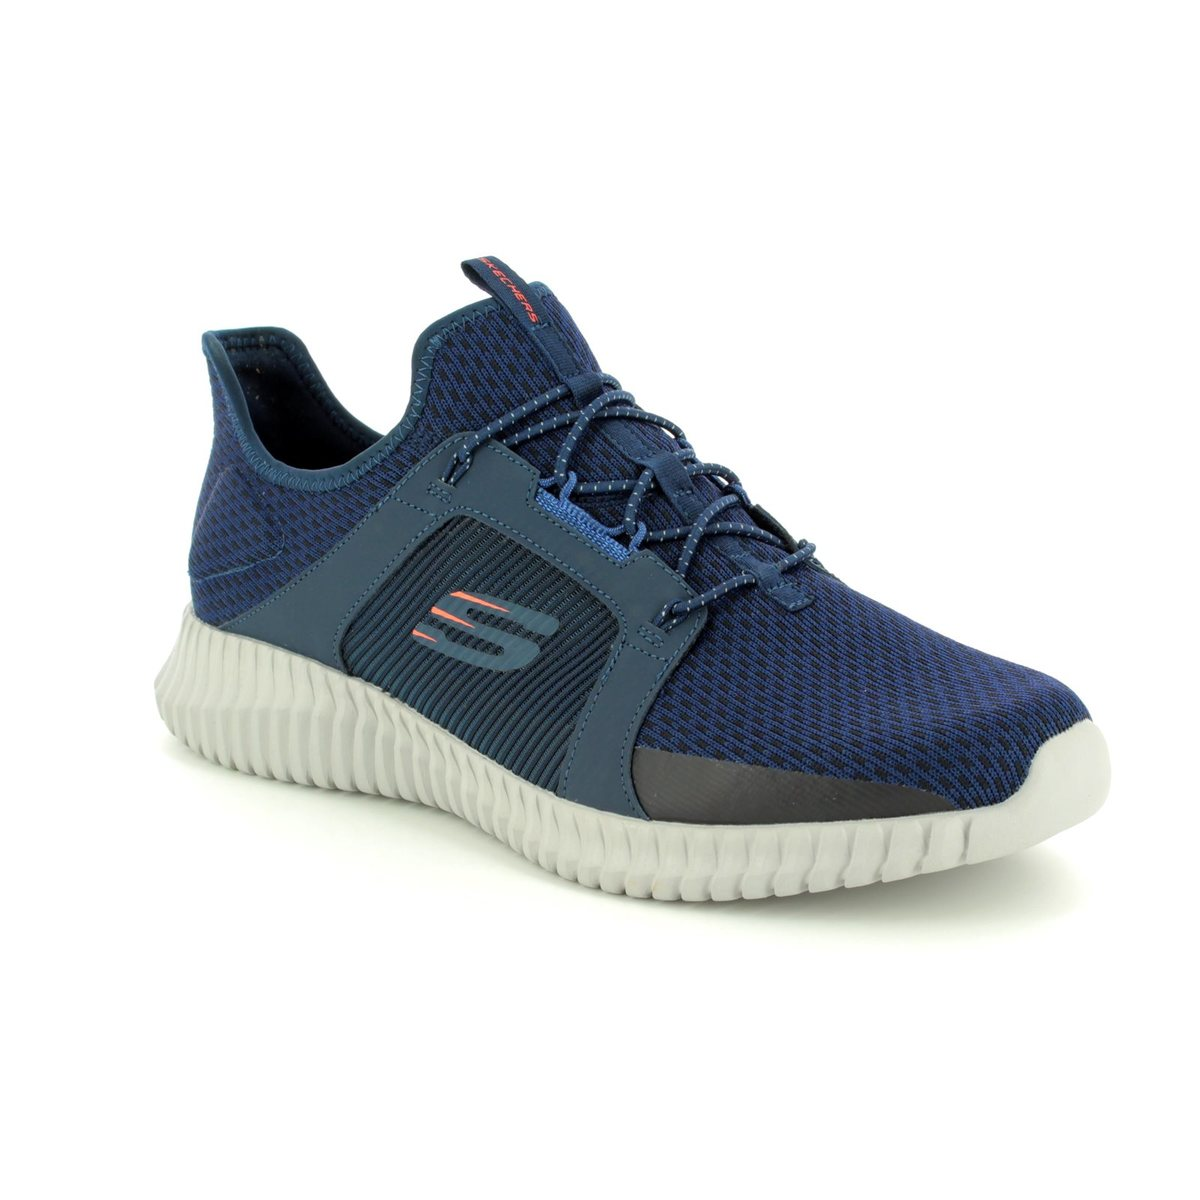 02951c11e593 Skechers Elite Flex New 52640 NVOR Navy trainers